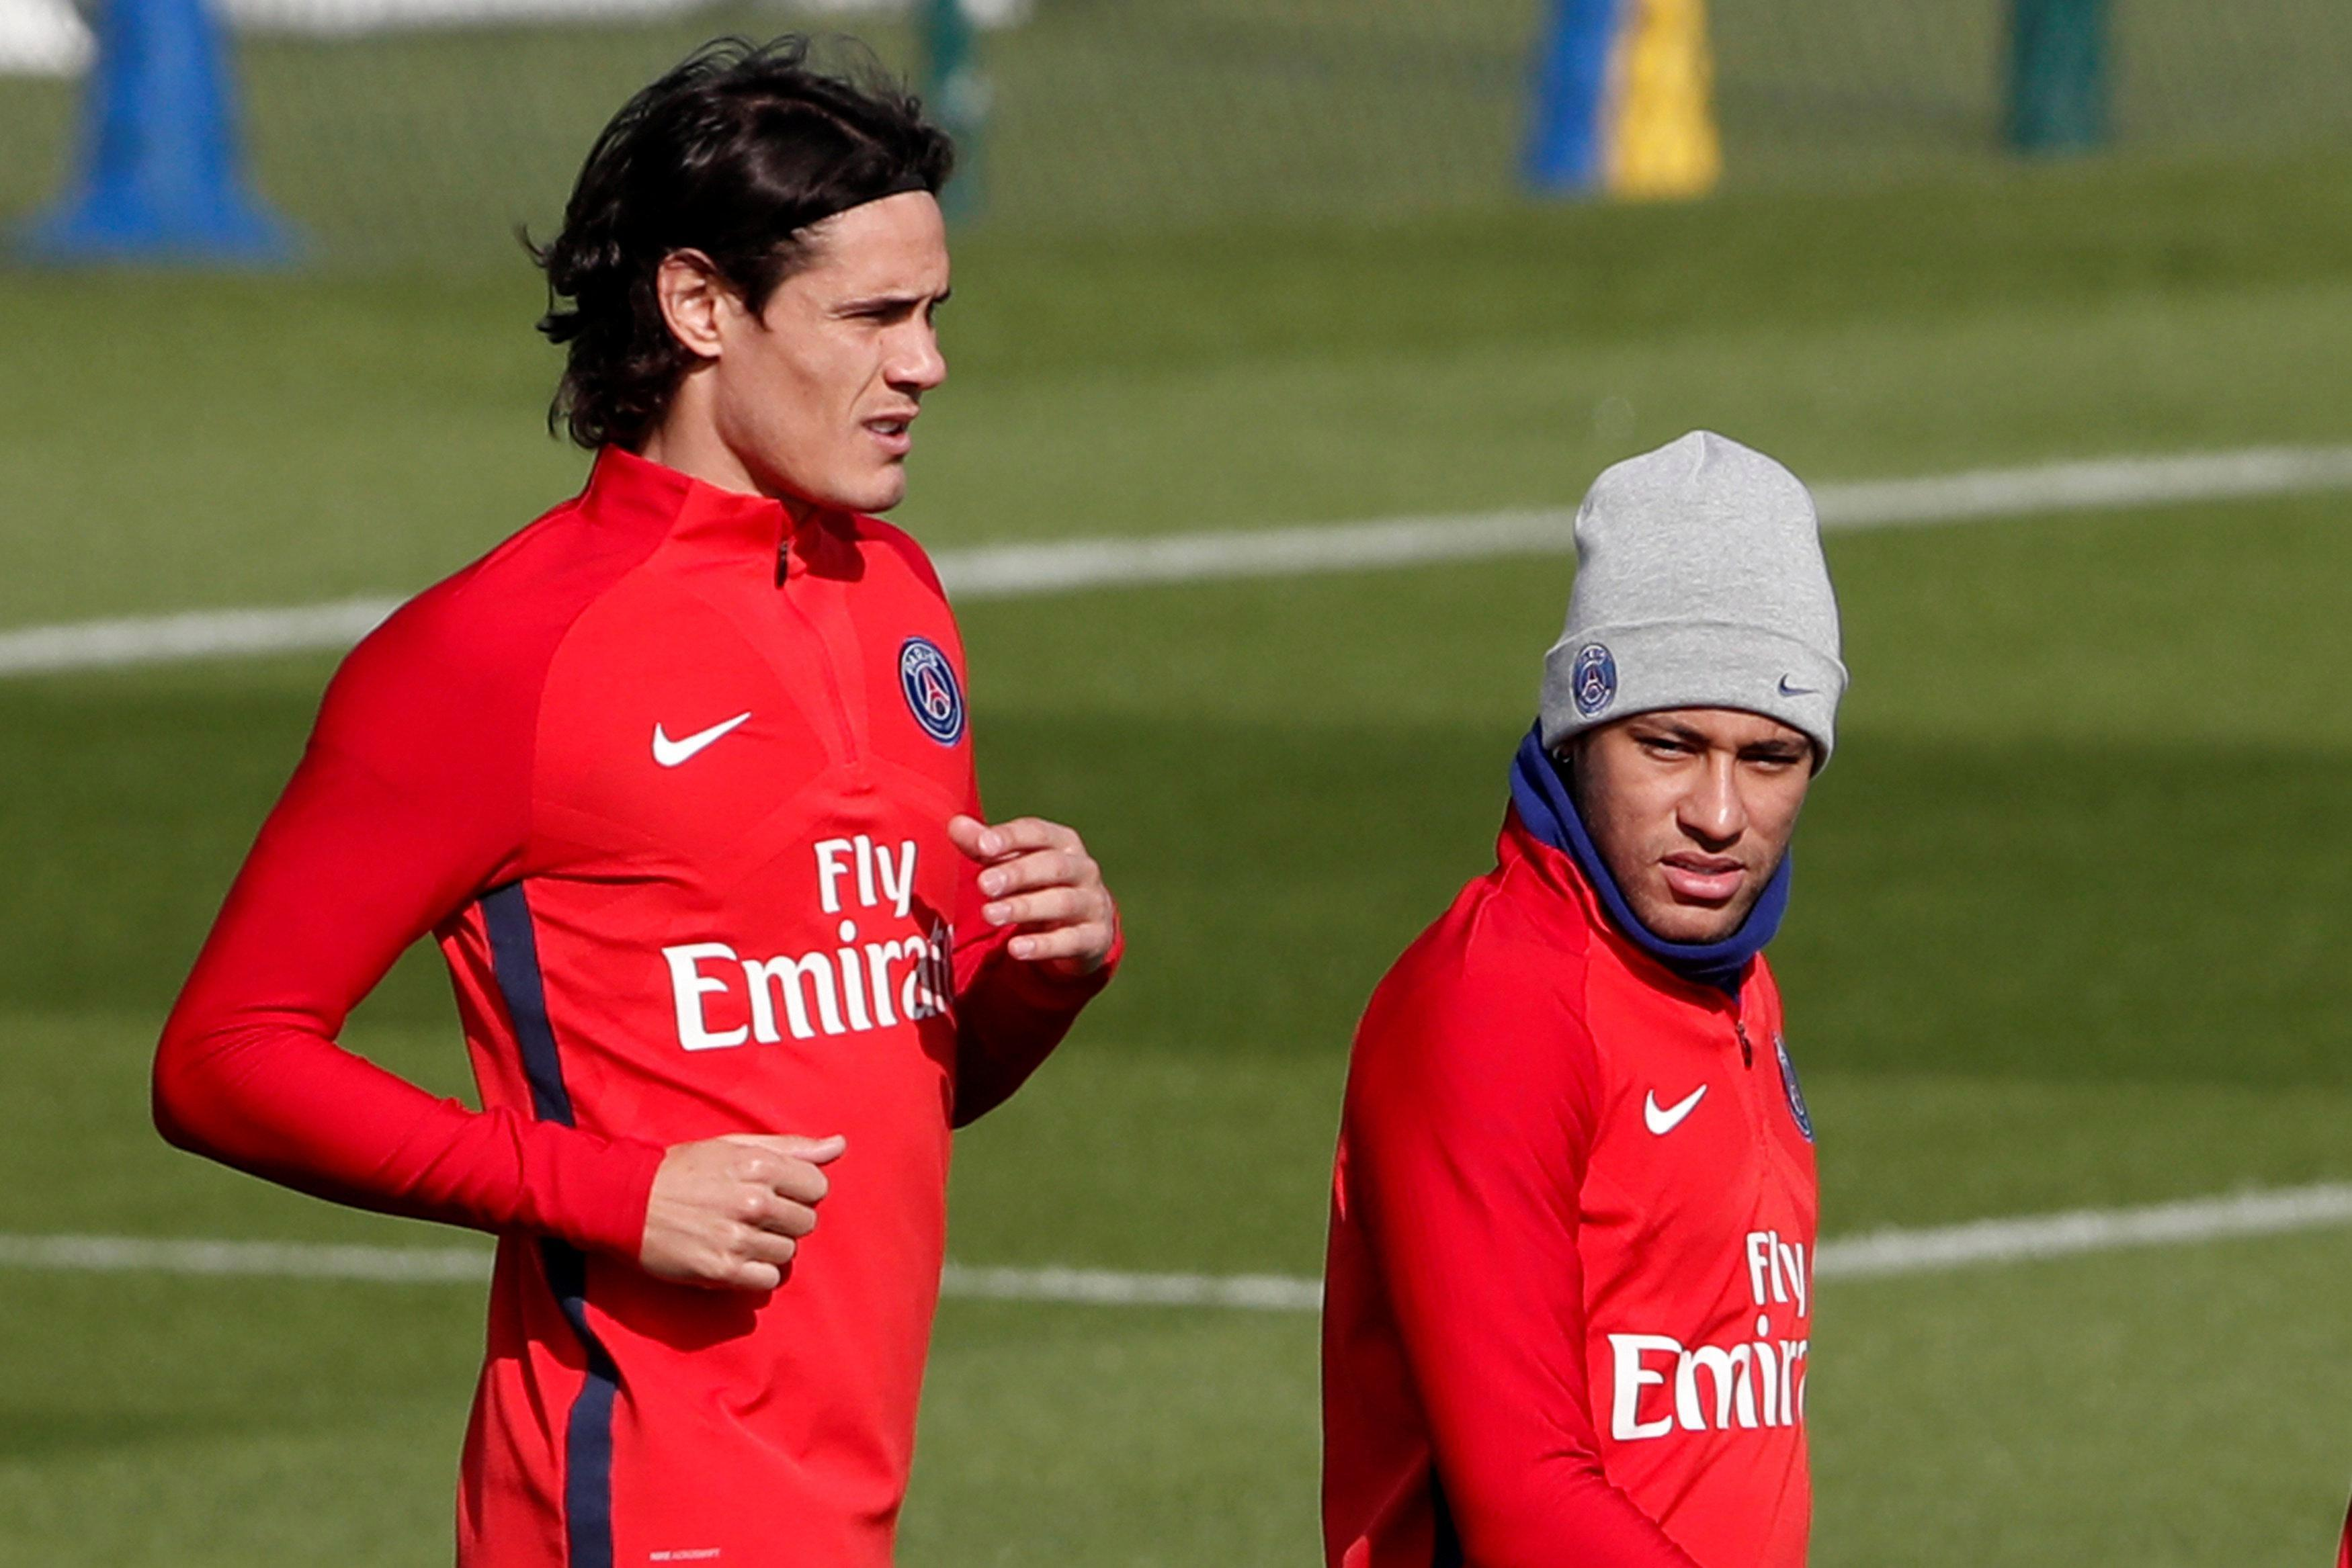 Neymar has reportedly apologised to Edinson Cavani for rowing over a penalty